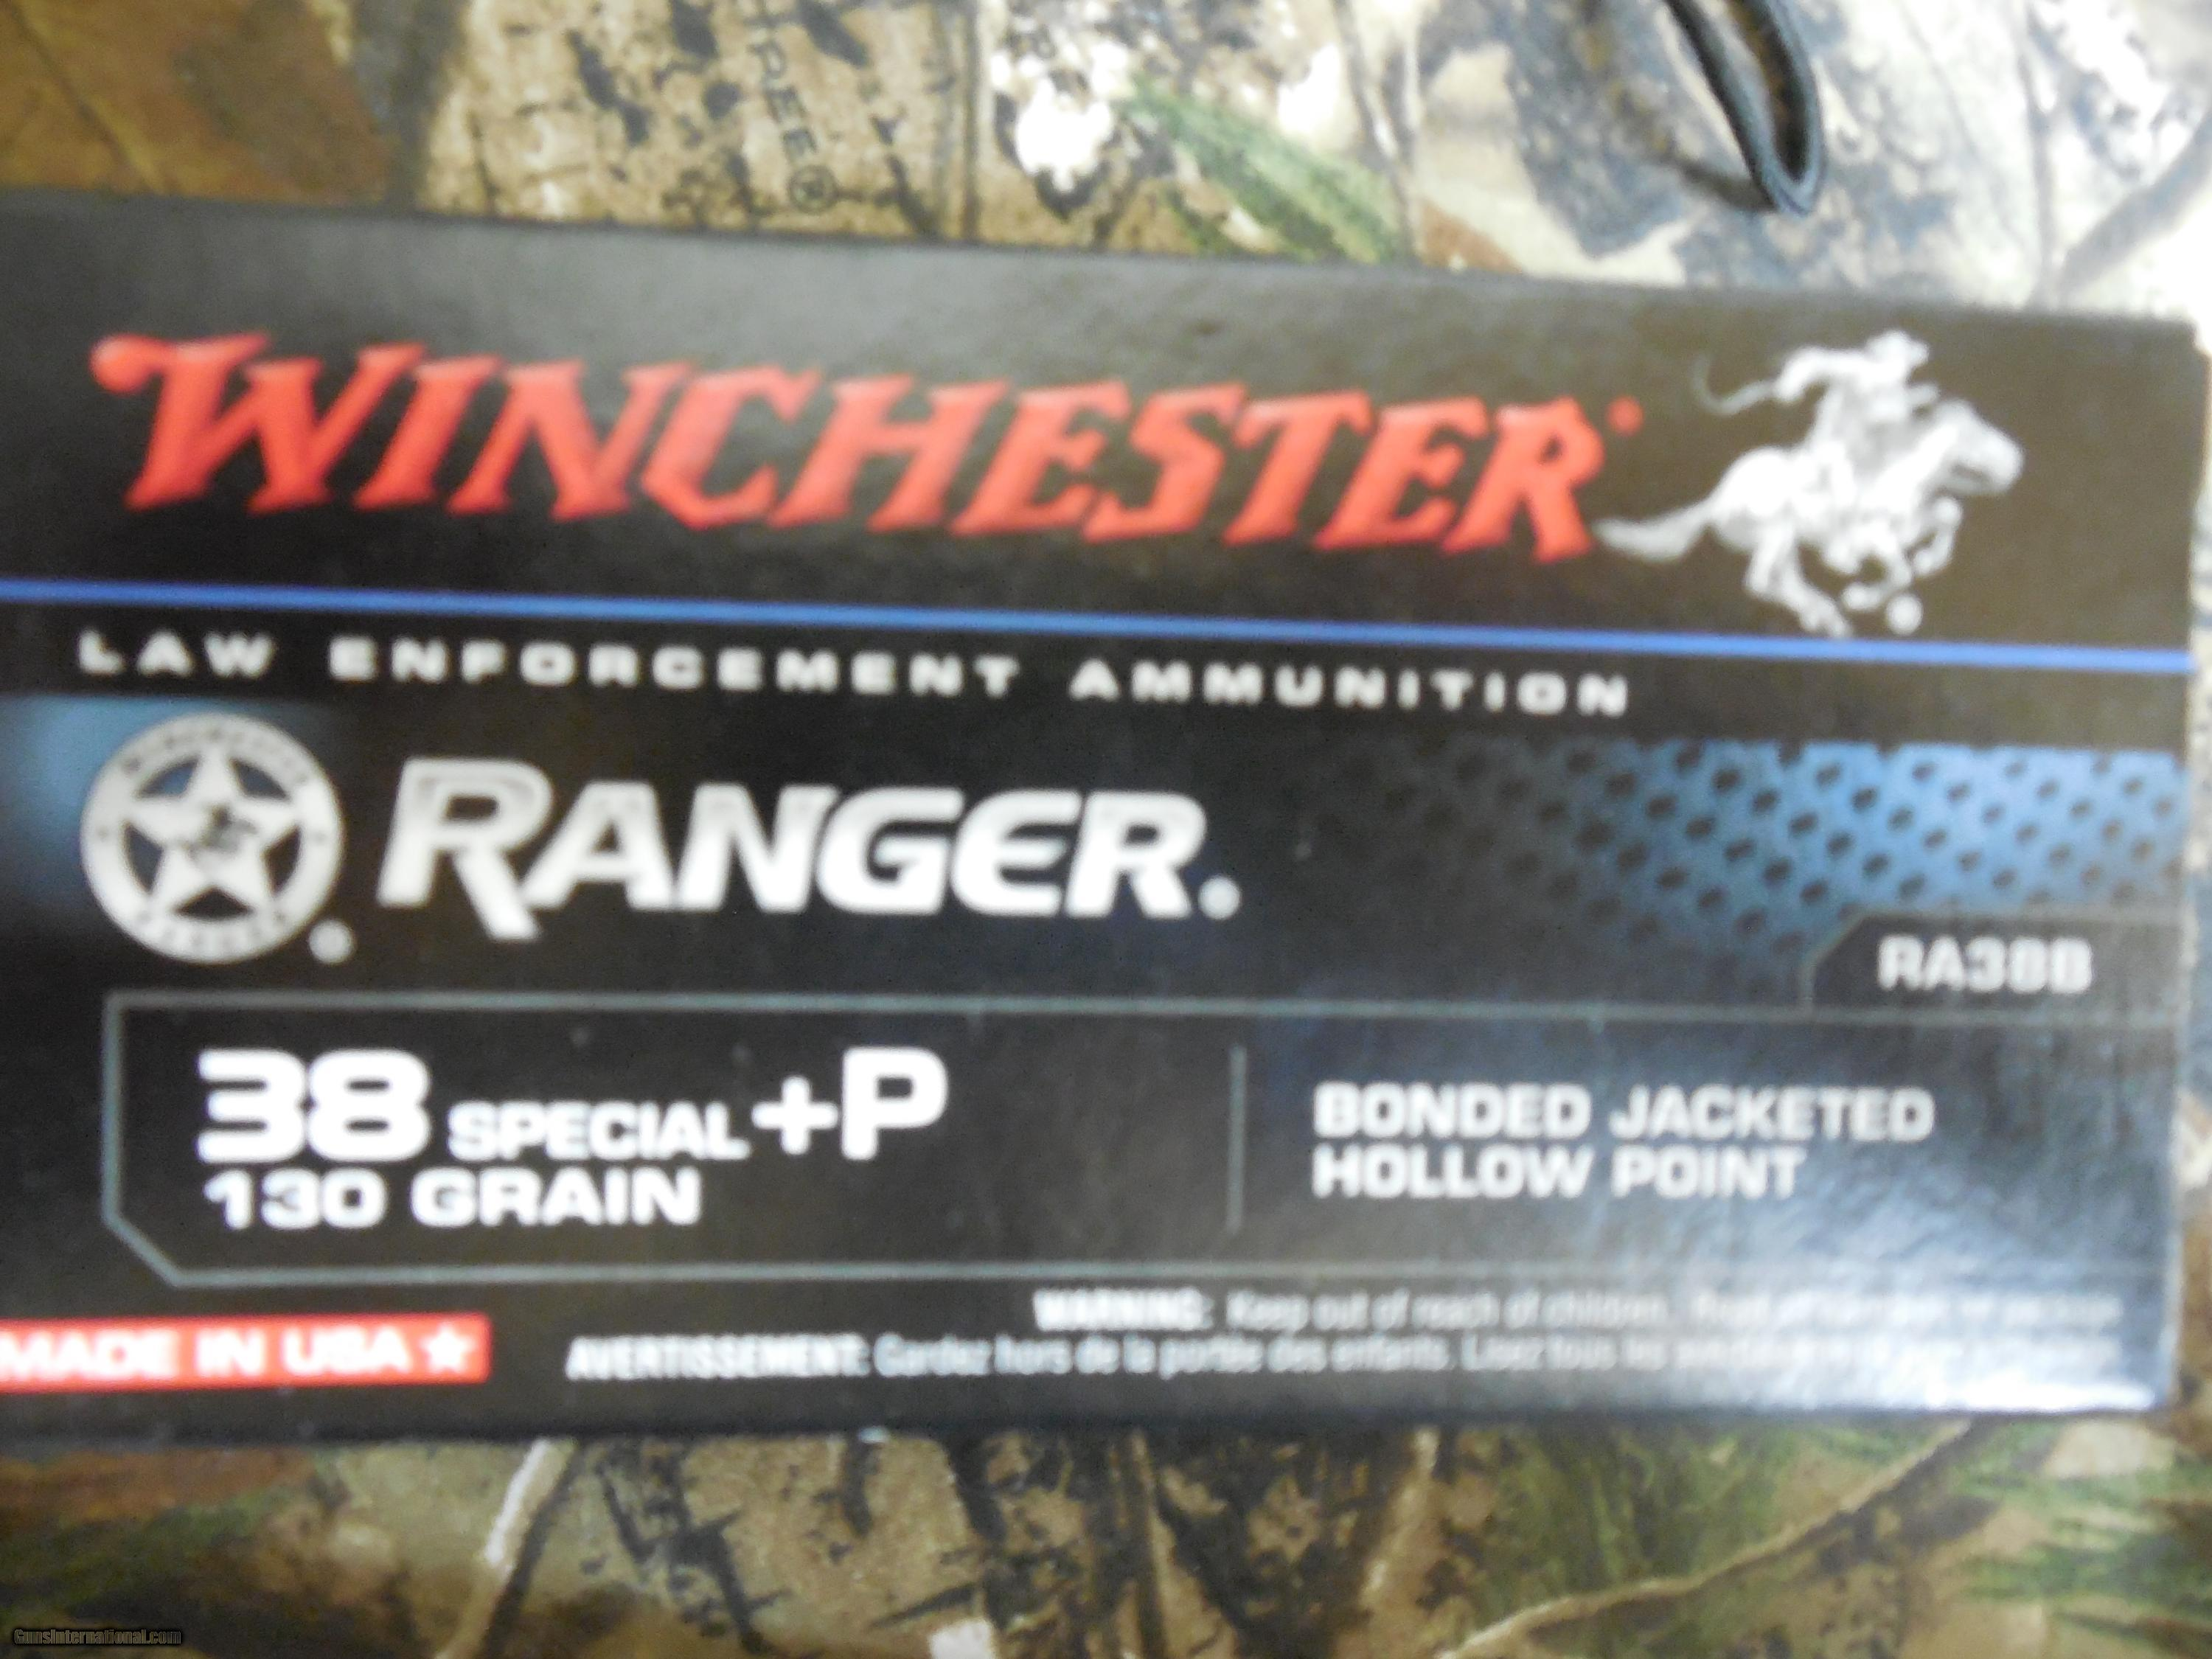 38 SPECIAL + P, WINCHECTER RANGER, 130 GR. BONDED JACKETED HOLLOW POINT, 50 ROUND BOXES.